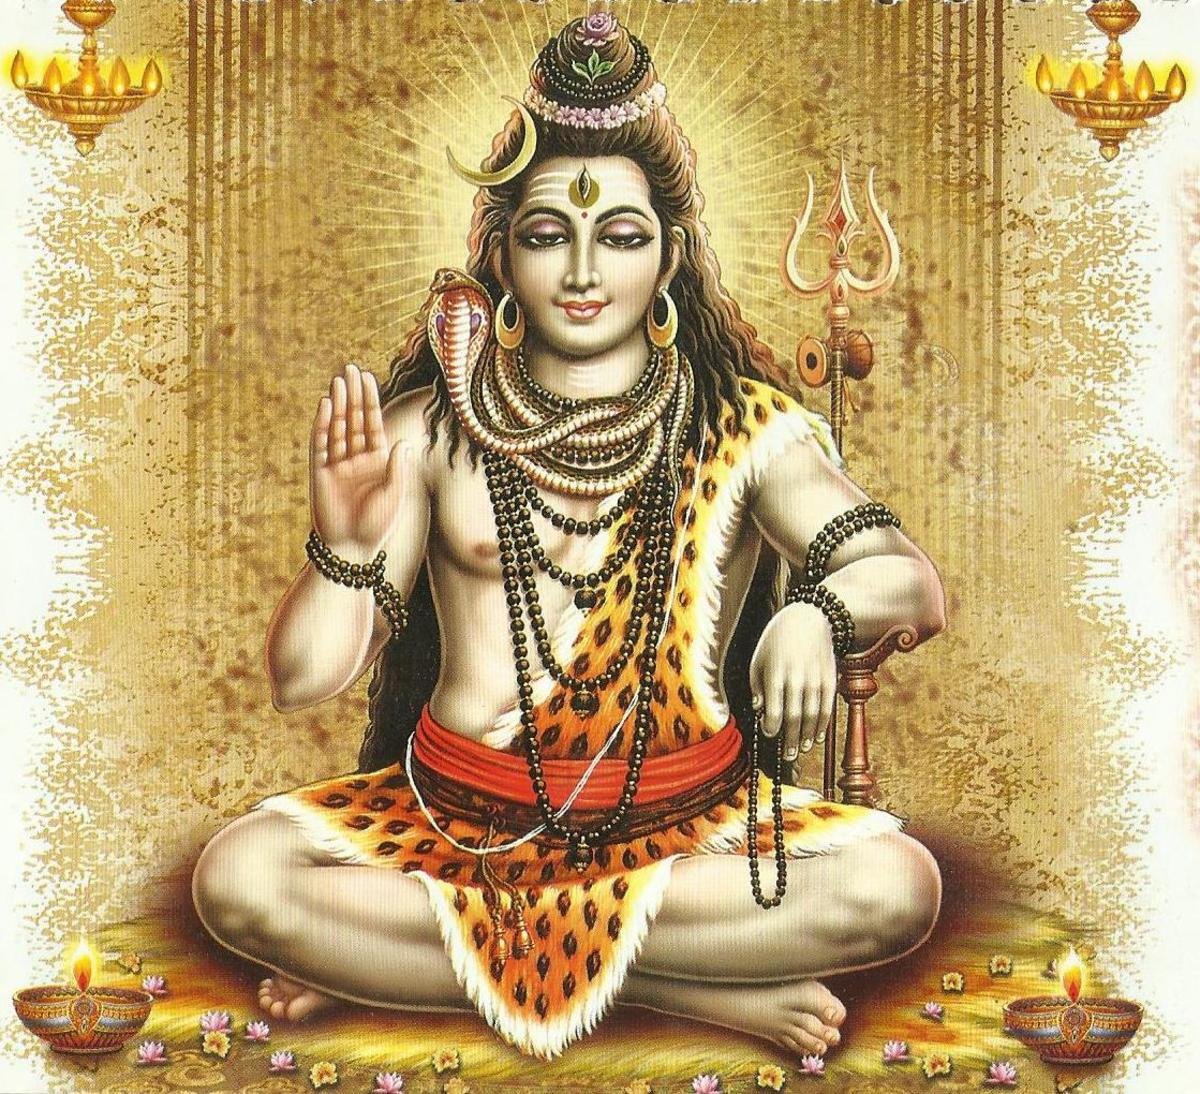 Lord Shiva is worshiped on Shravan Somvar